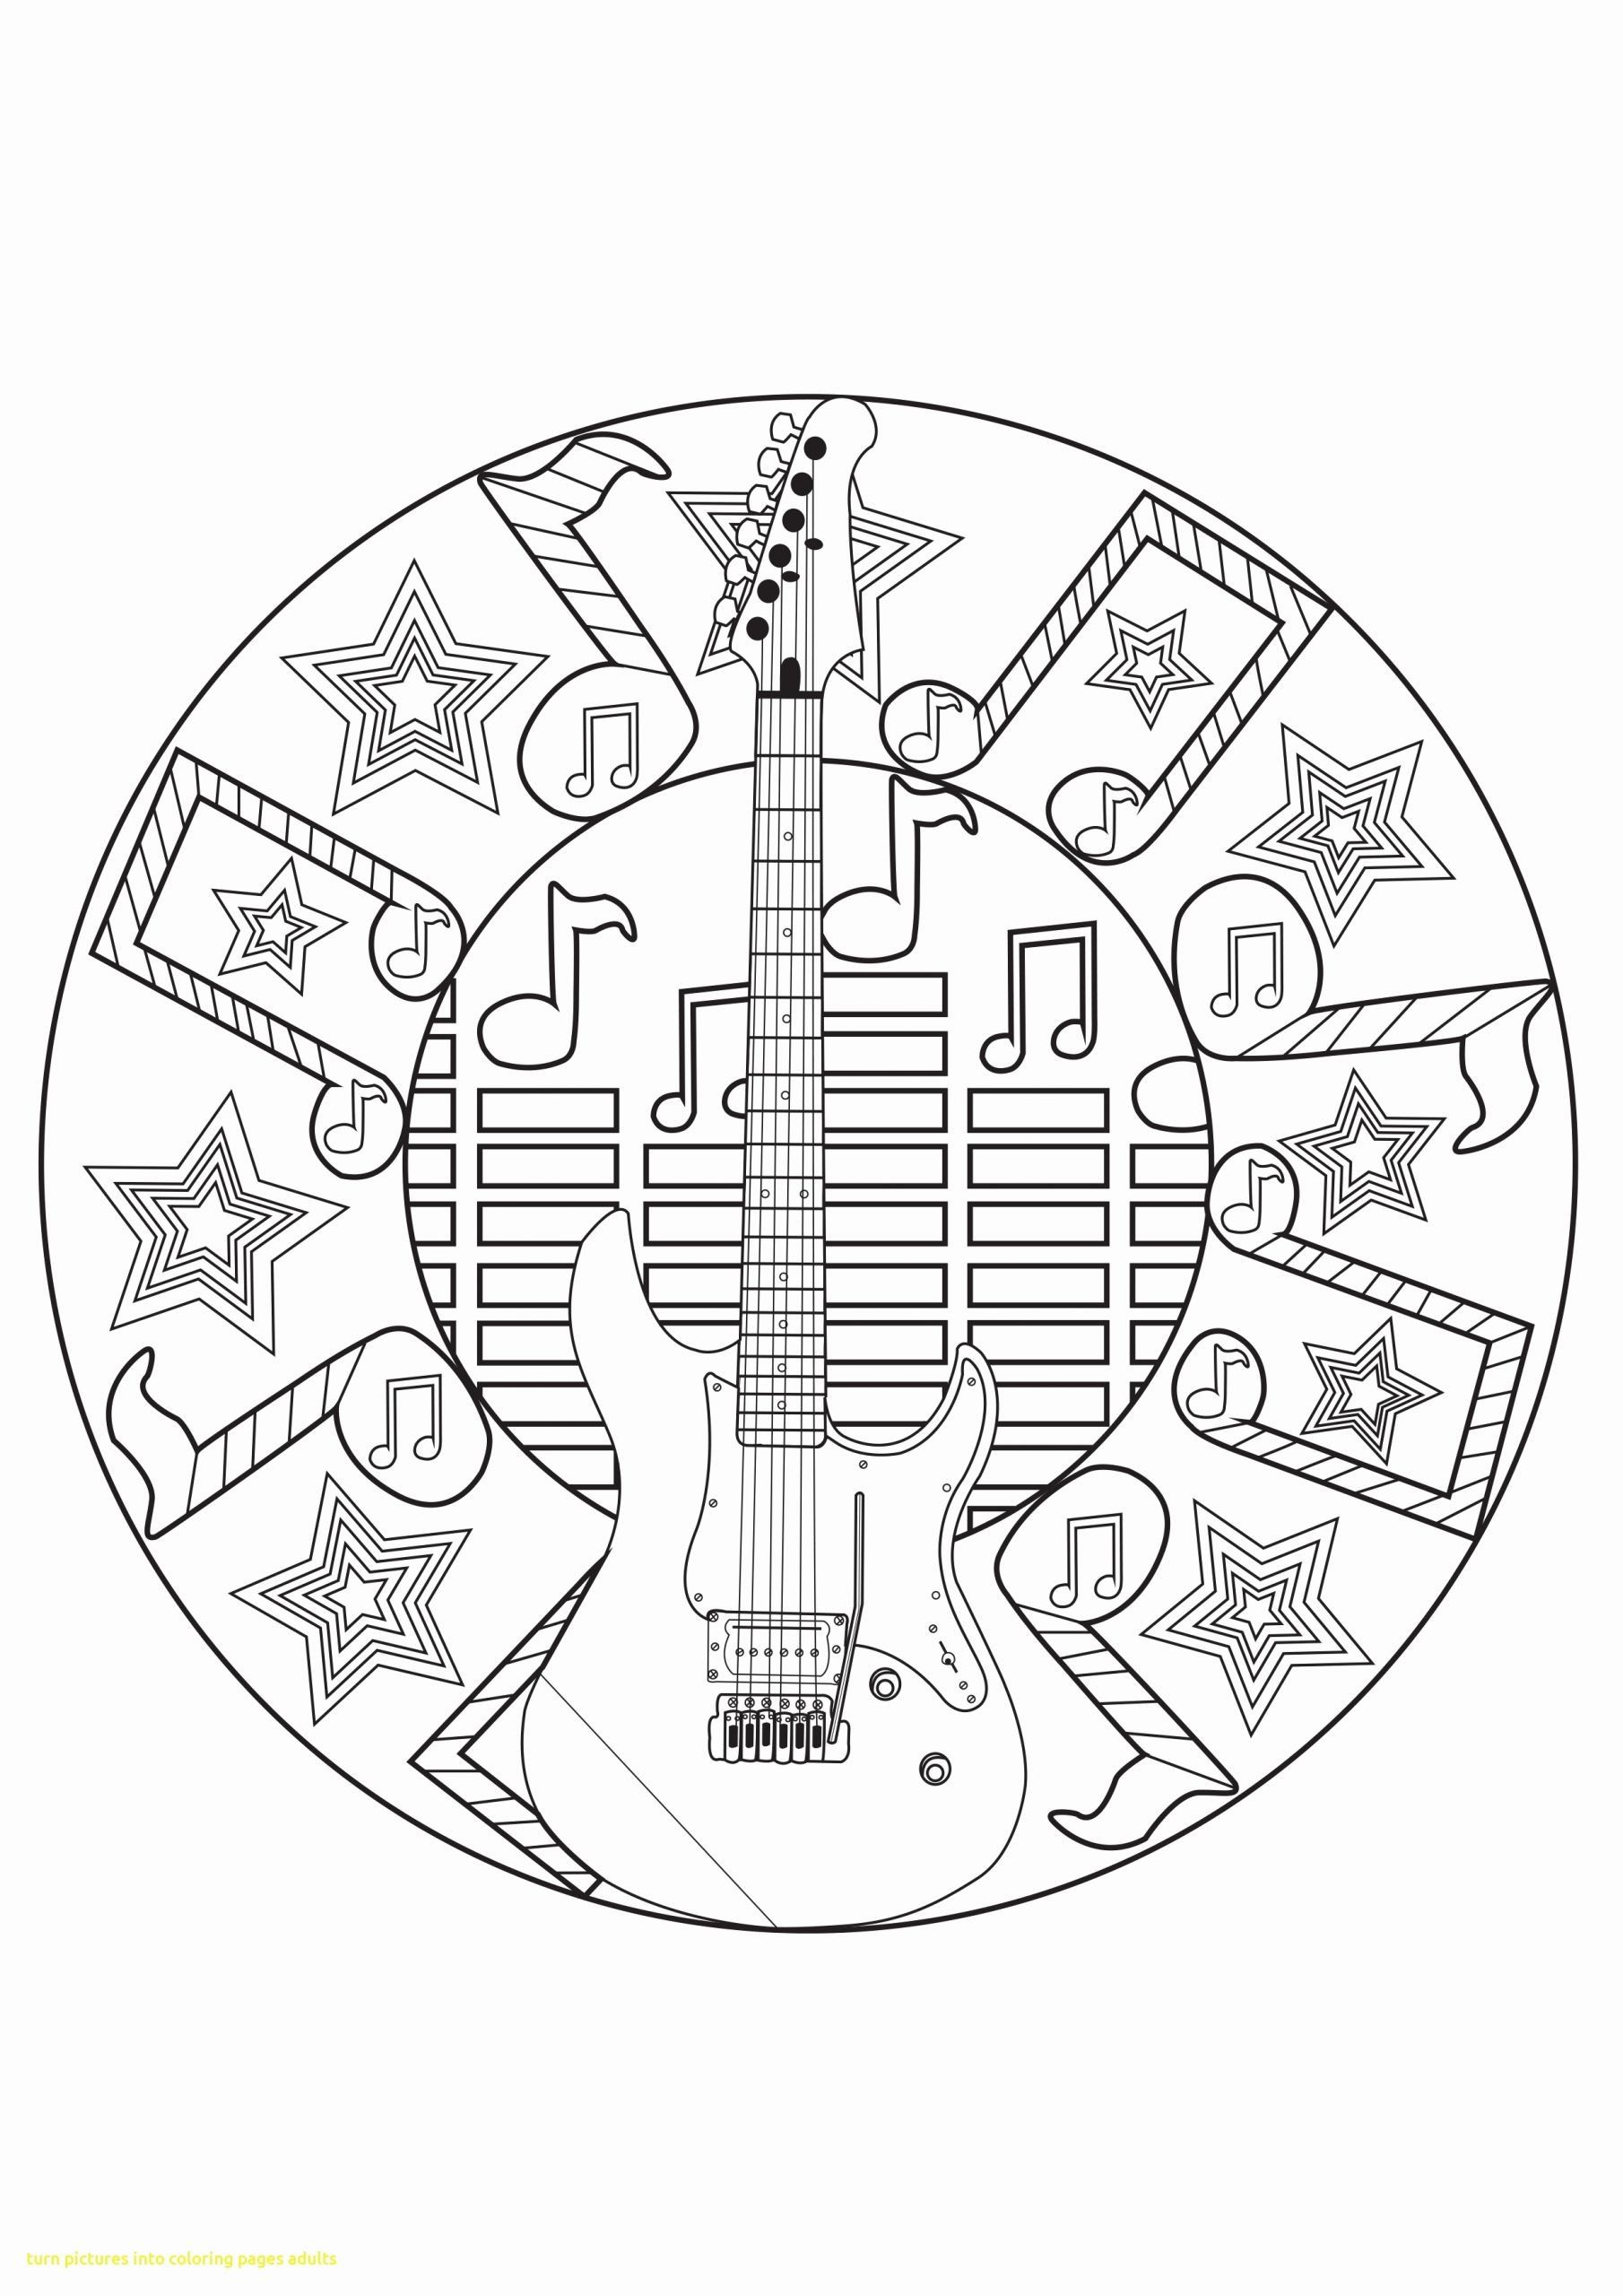 Turn Photo Into Coloring Page Free Online New Turn Image Into Coloring Page At Getcolorings In 2020 Music Coloring Music Coloring Sheets Mandala Coloring Pages